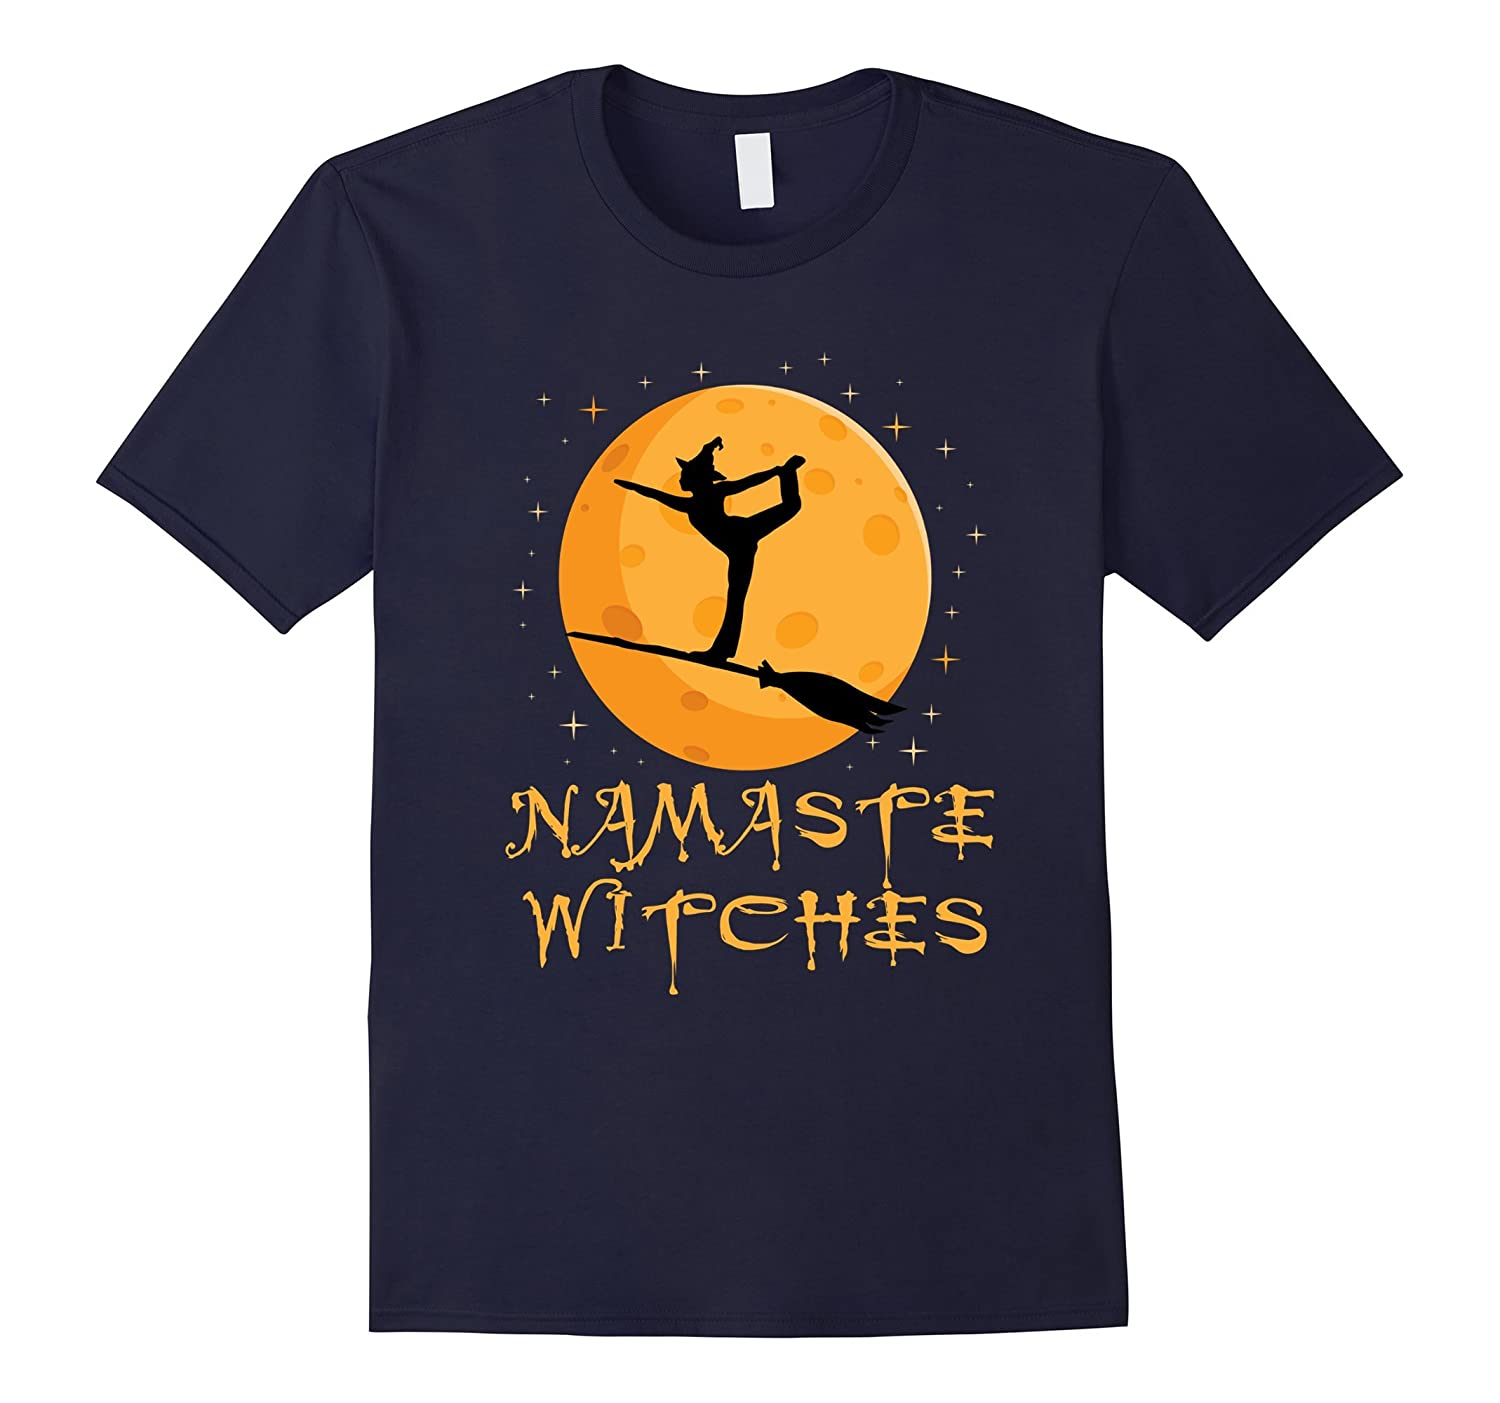 'Namaste Witches' Cute Witch Halloween Shirt-ANZ